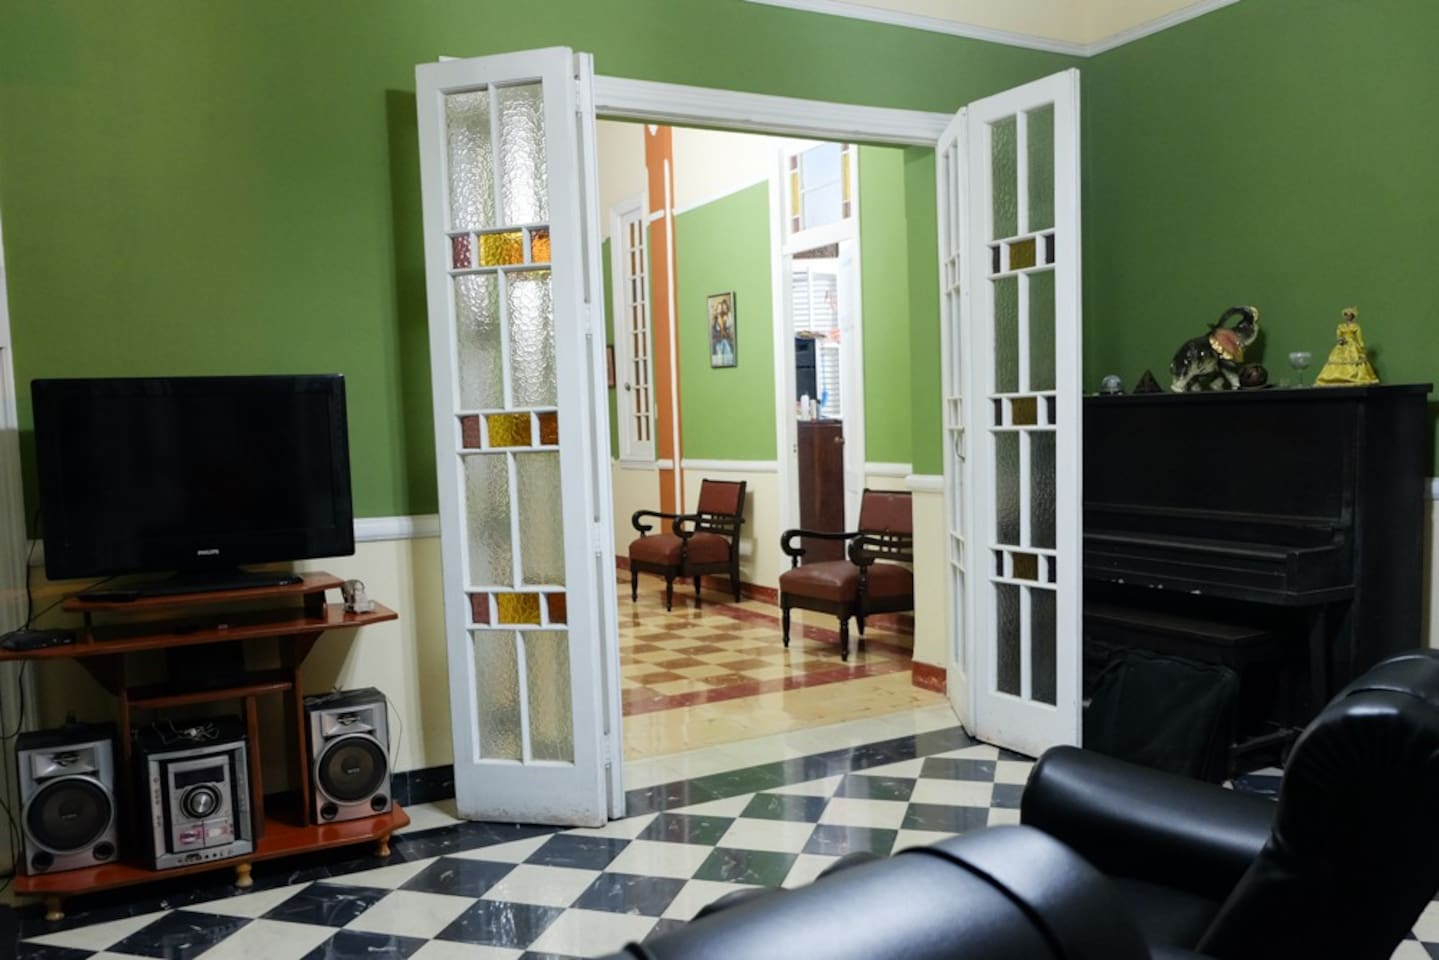 Relax in our chill living room, or step out to our private balcony overlooking the sights of Old Havana